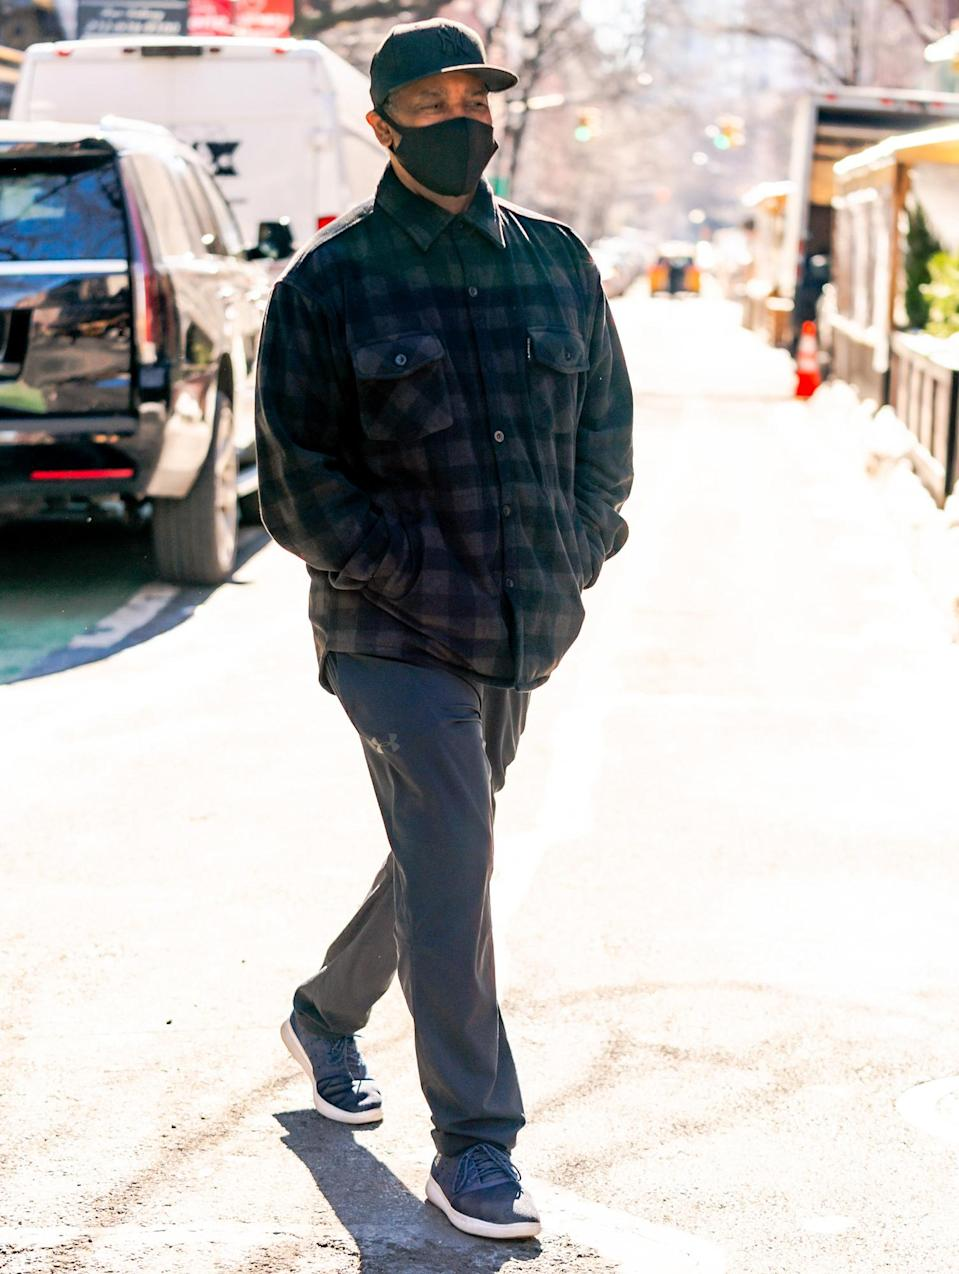 <p>Director Denzel Washington is seen on the set of <em>Journal for Jordan</em> for the first time in N.Y.C. on Wednesday.</p>